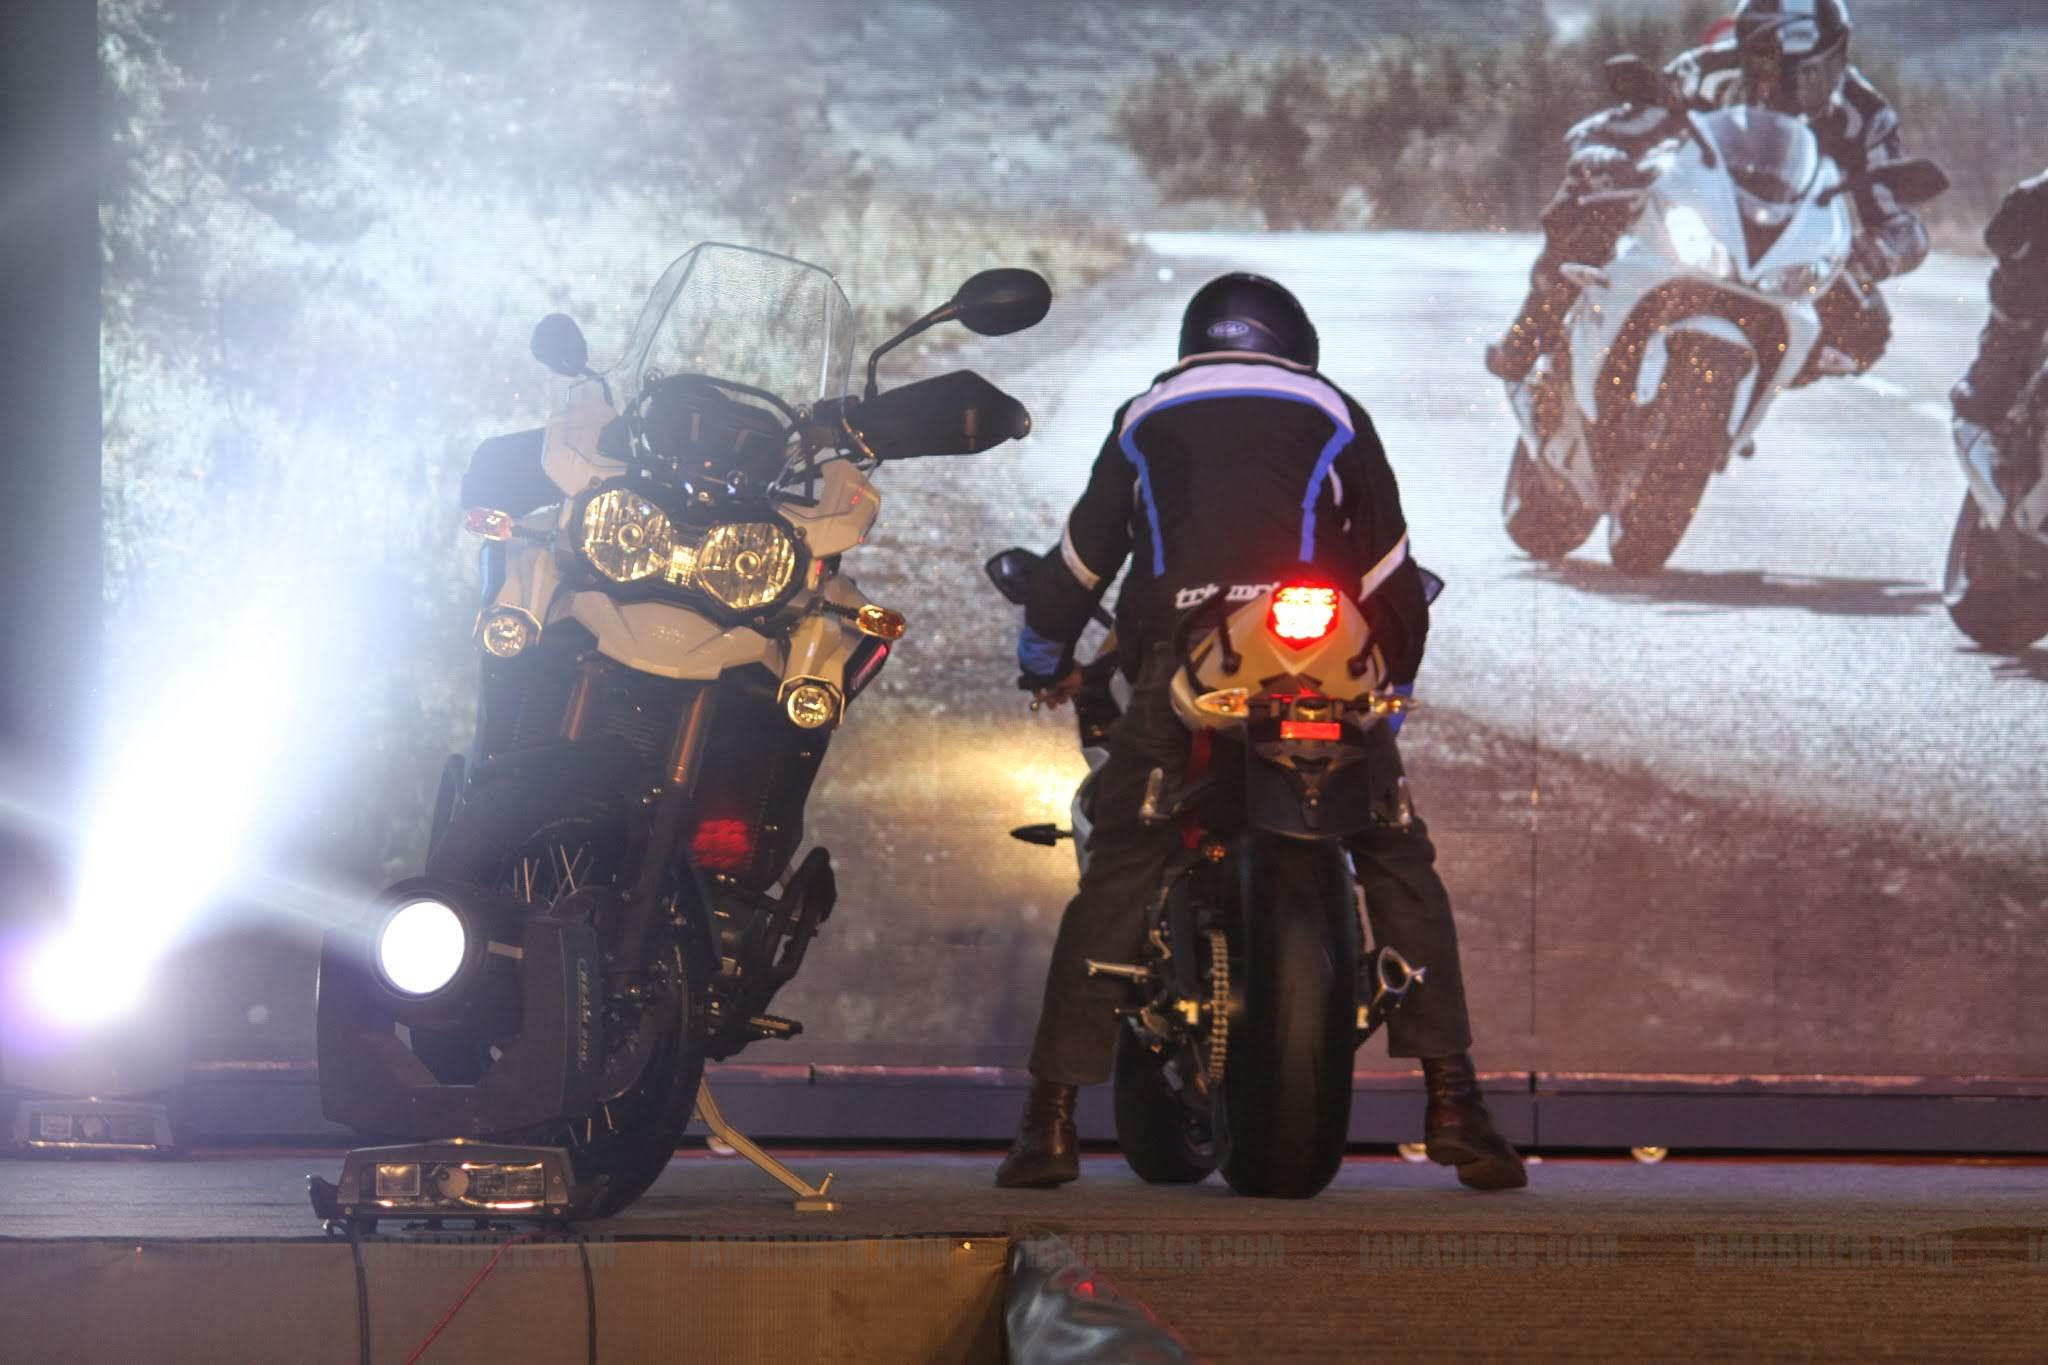 triumph motorcycles india launch - 21